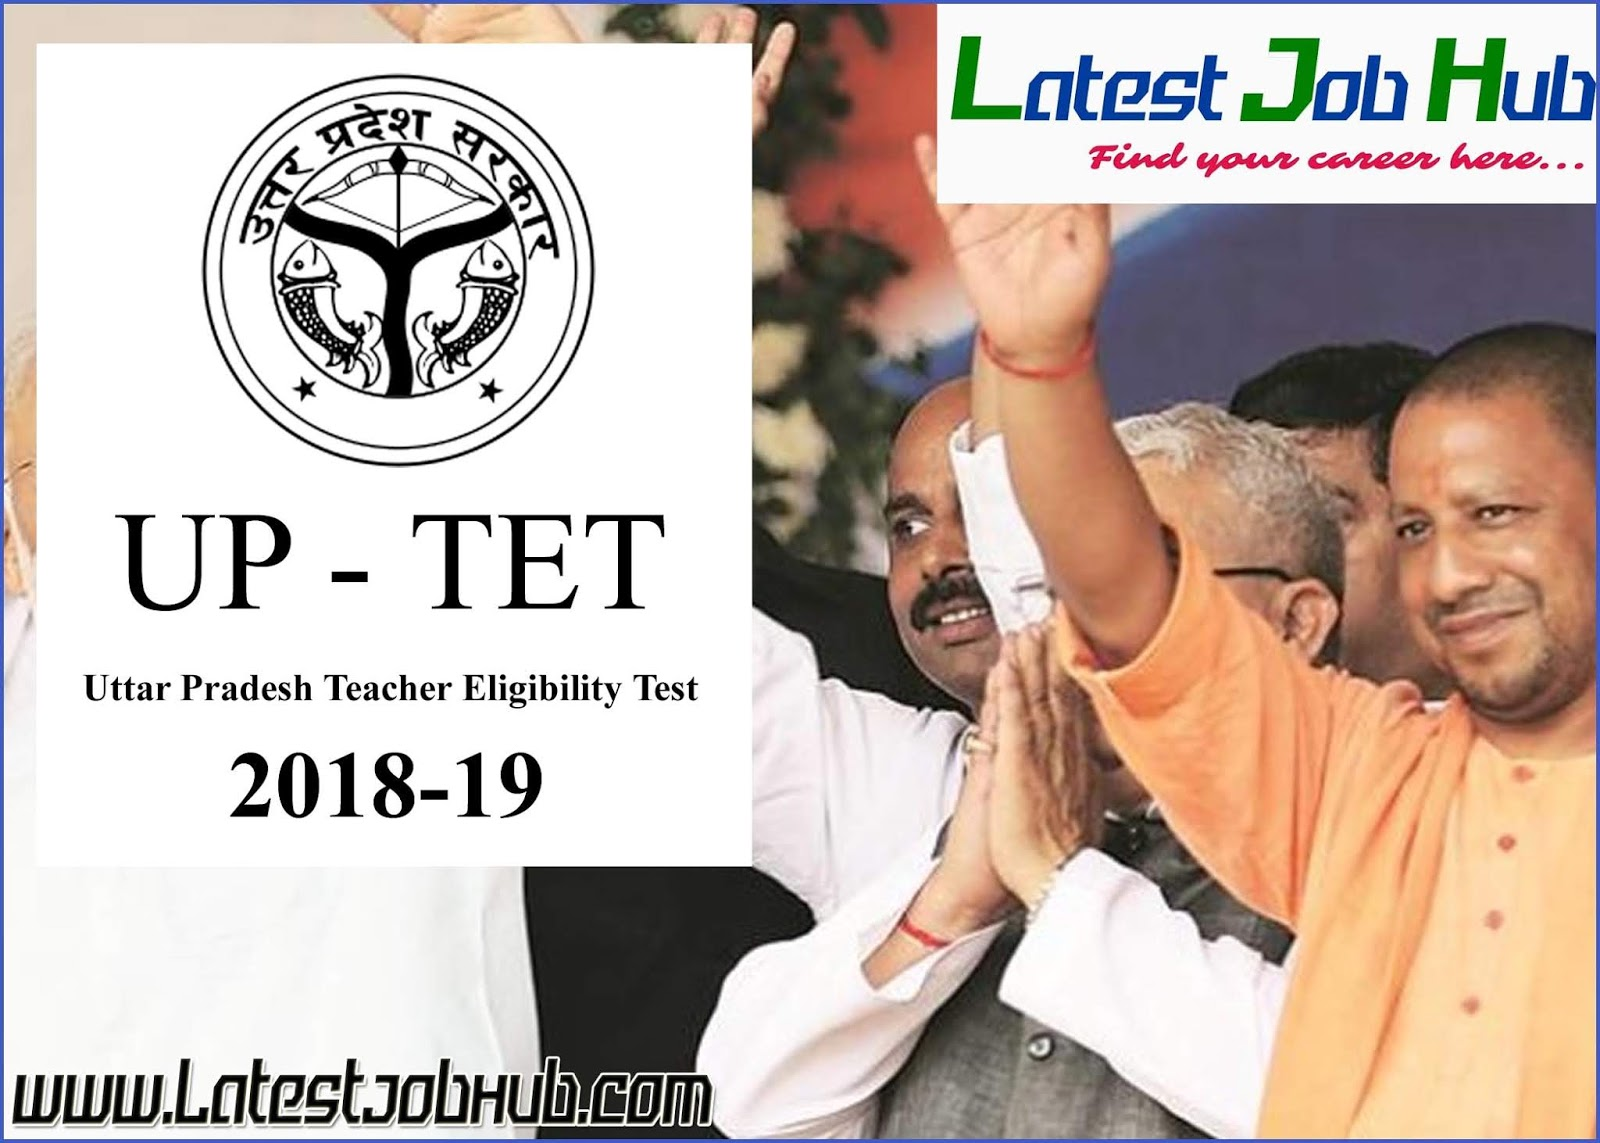 UP TET 2018, TET 2018, Teacher Vacancy Uttar Pradesh, UP Teacher Eligibility Test 2019, TET 2019, CTET